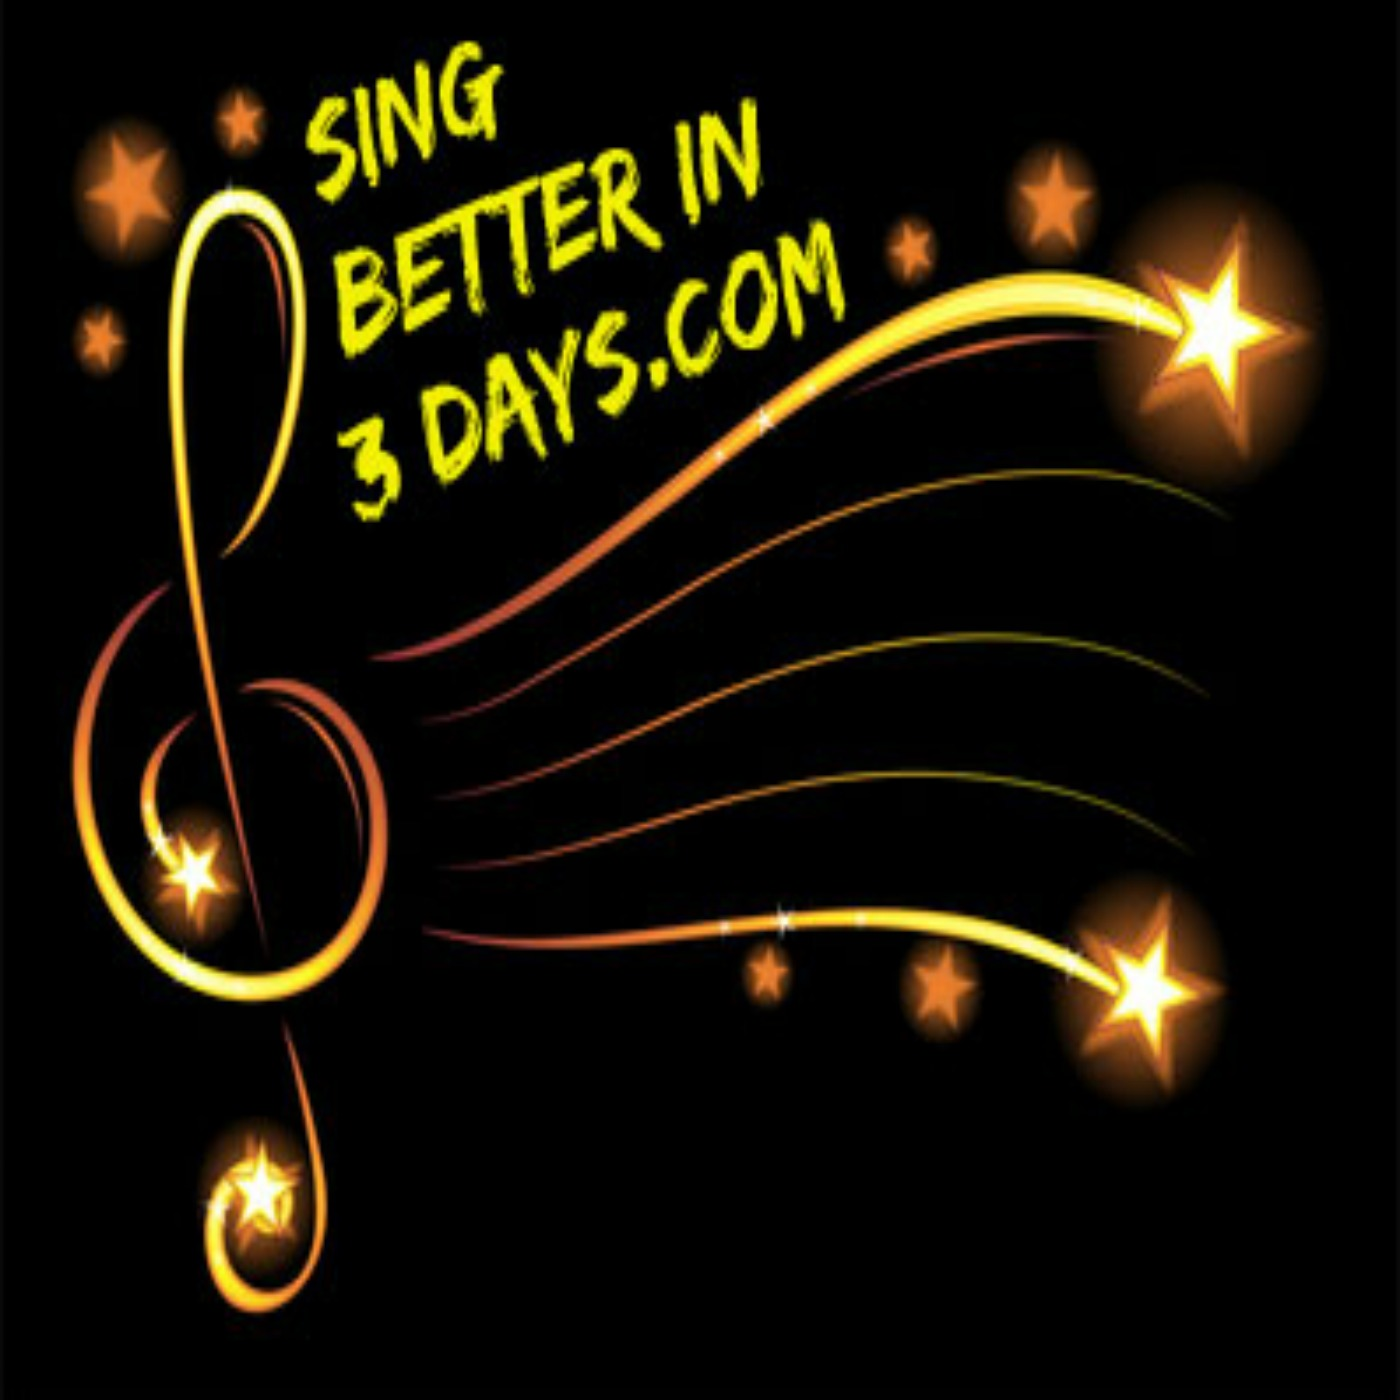 sing better in 3 days voice lessons singing lessons and tips about singing listen via. Black Bedroom Furniture Sets. Home Design Ideas